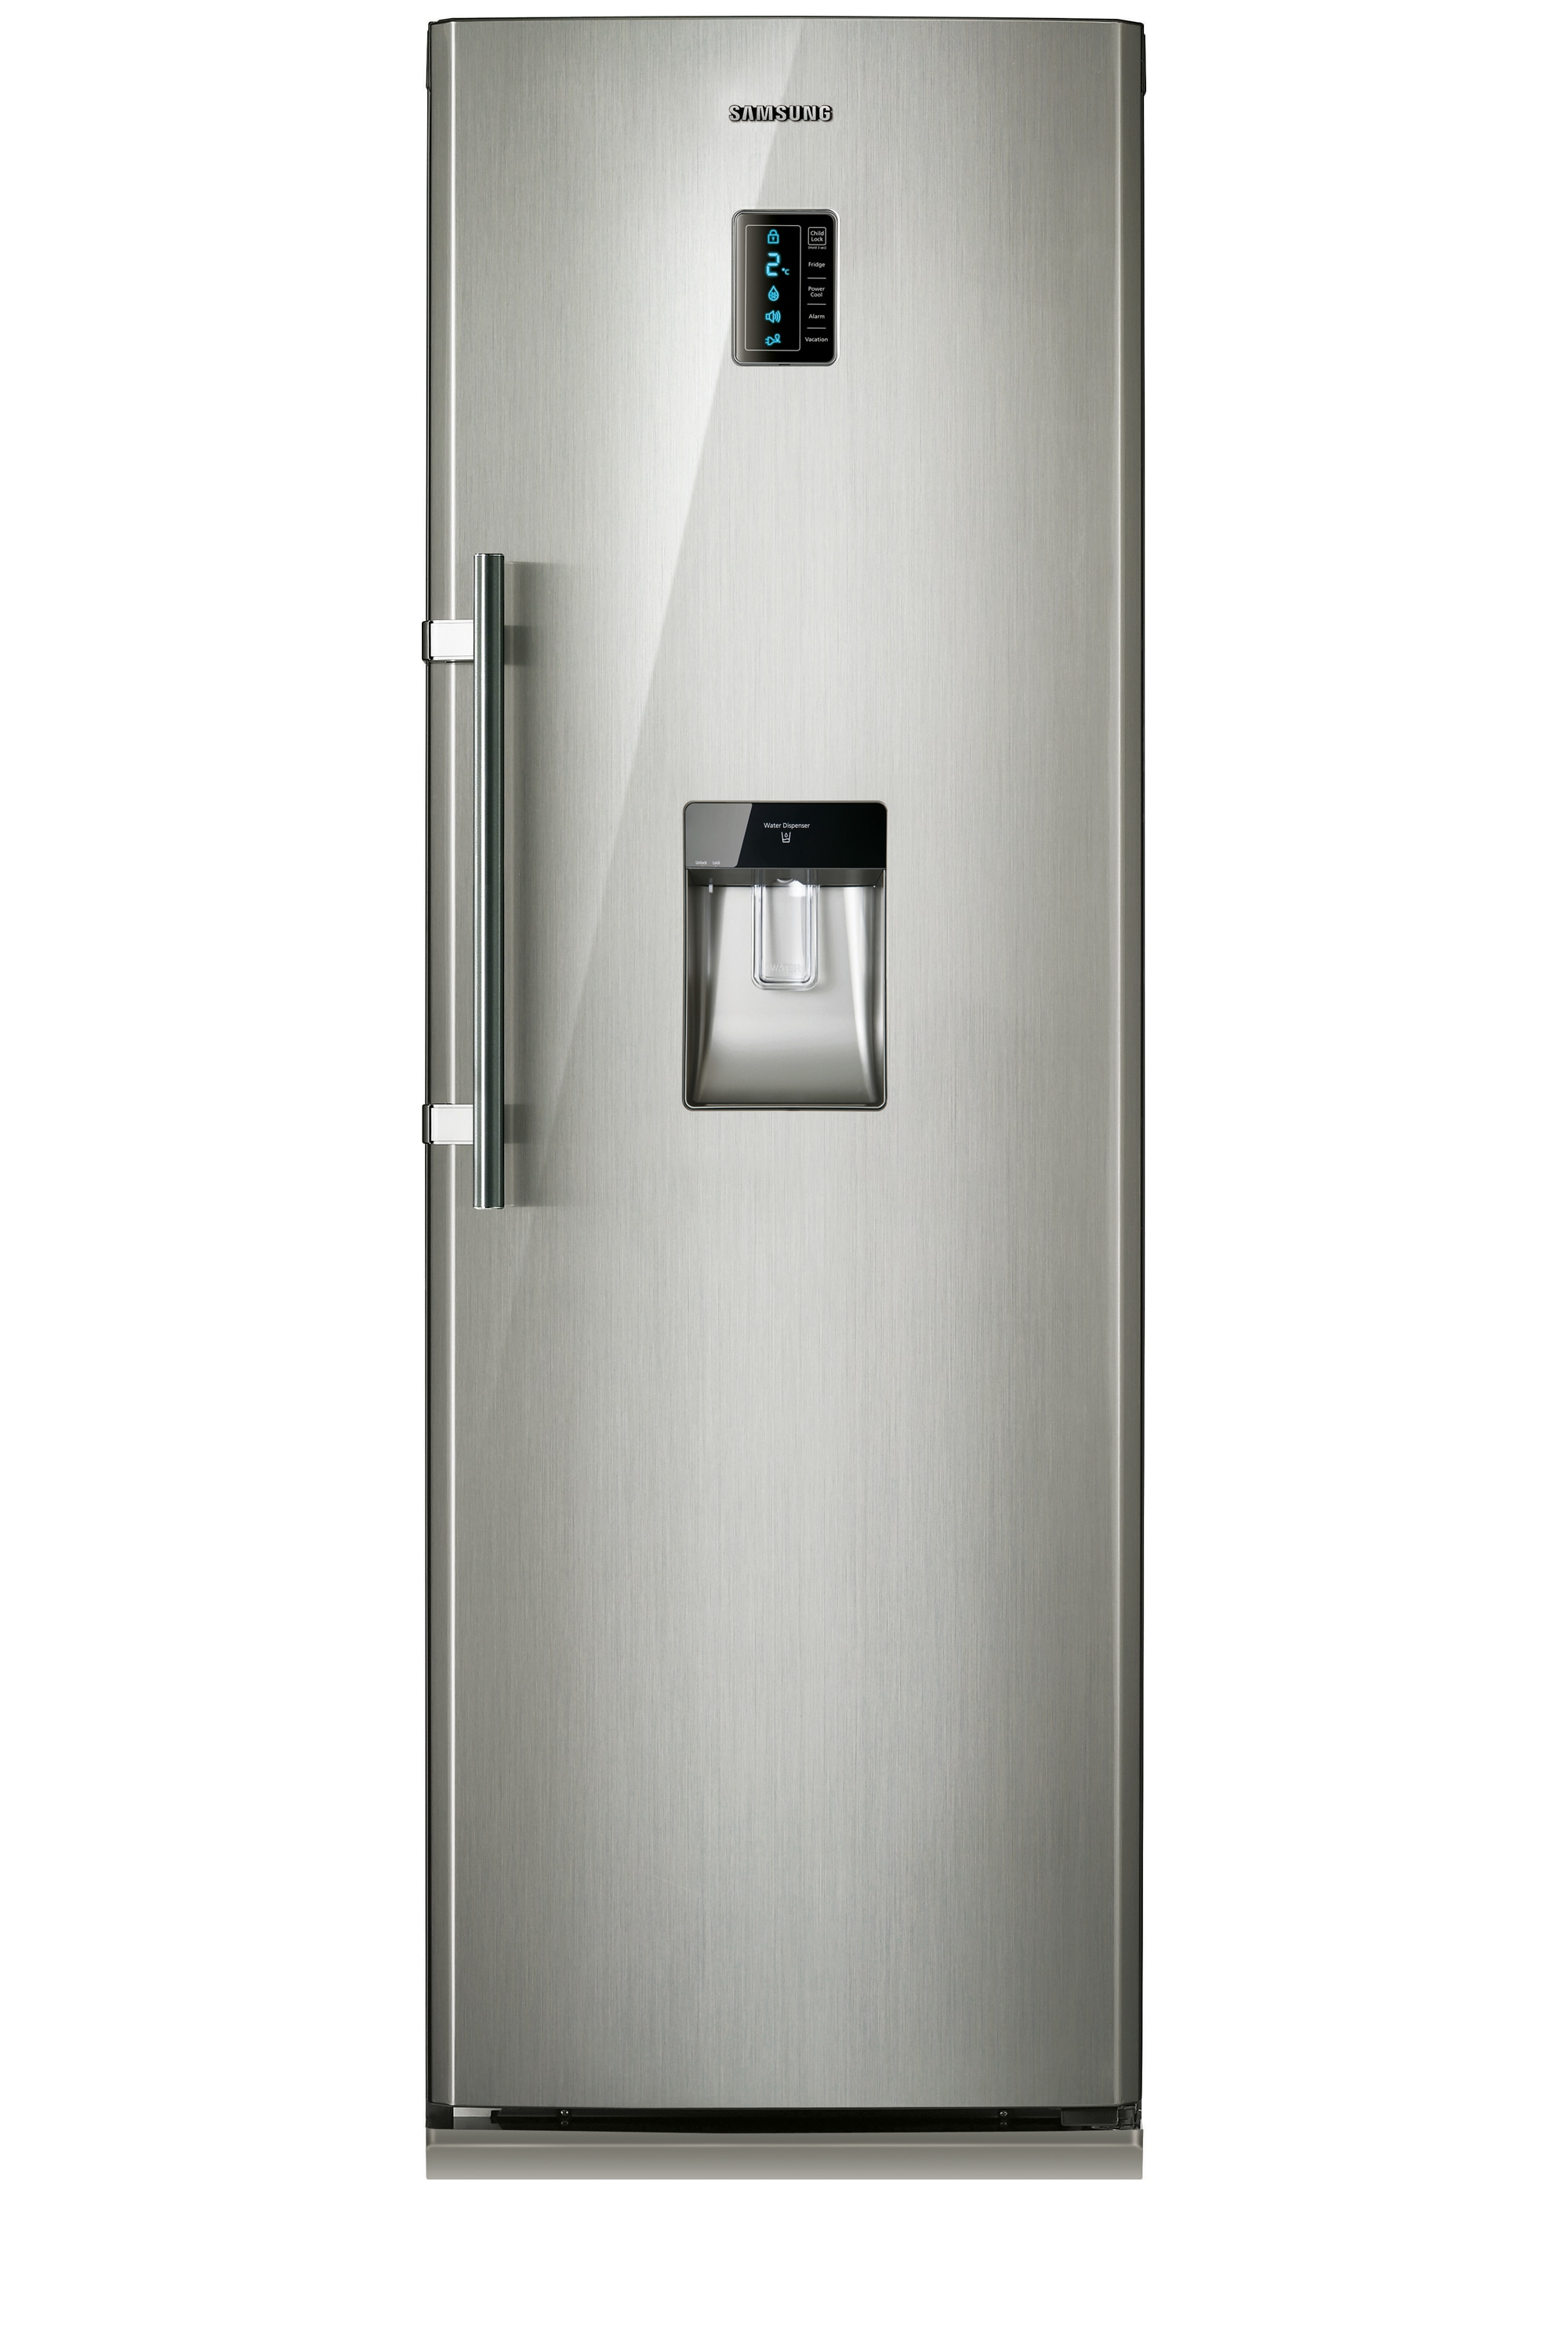 TWIN 1 Door with Easy Bar Handle, 348 L